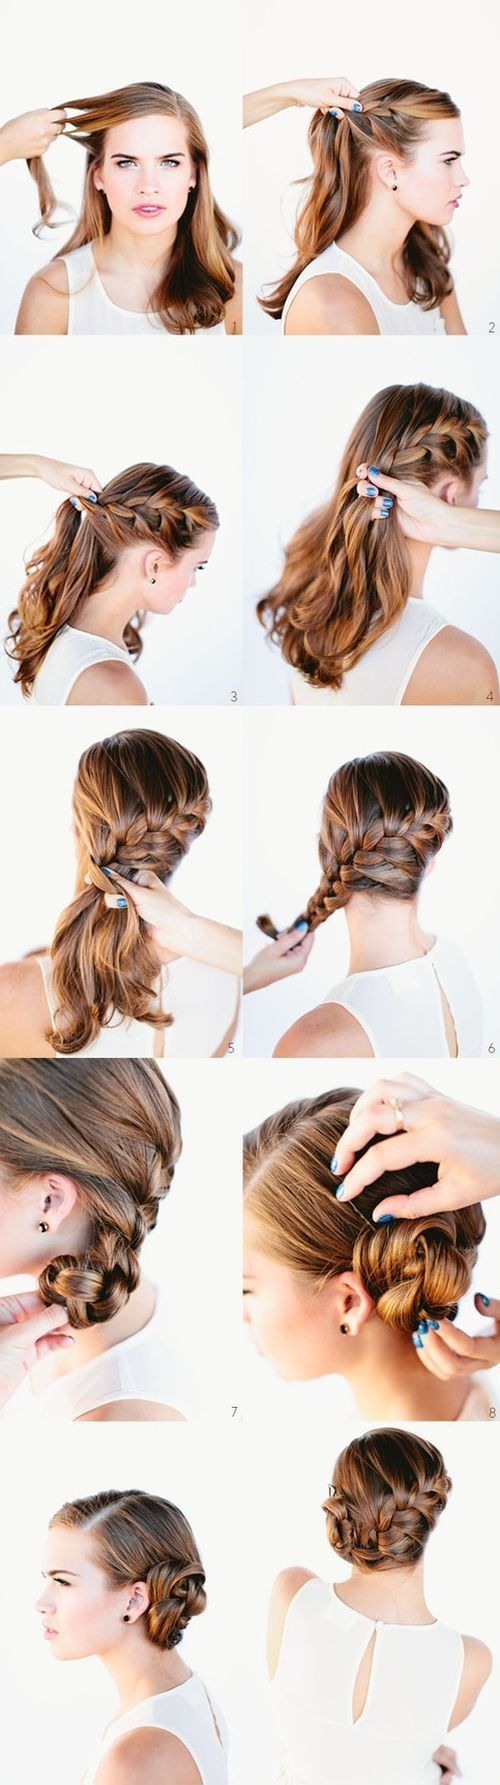 15 stylish mermaid hairstyles to combine your look